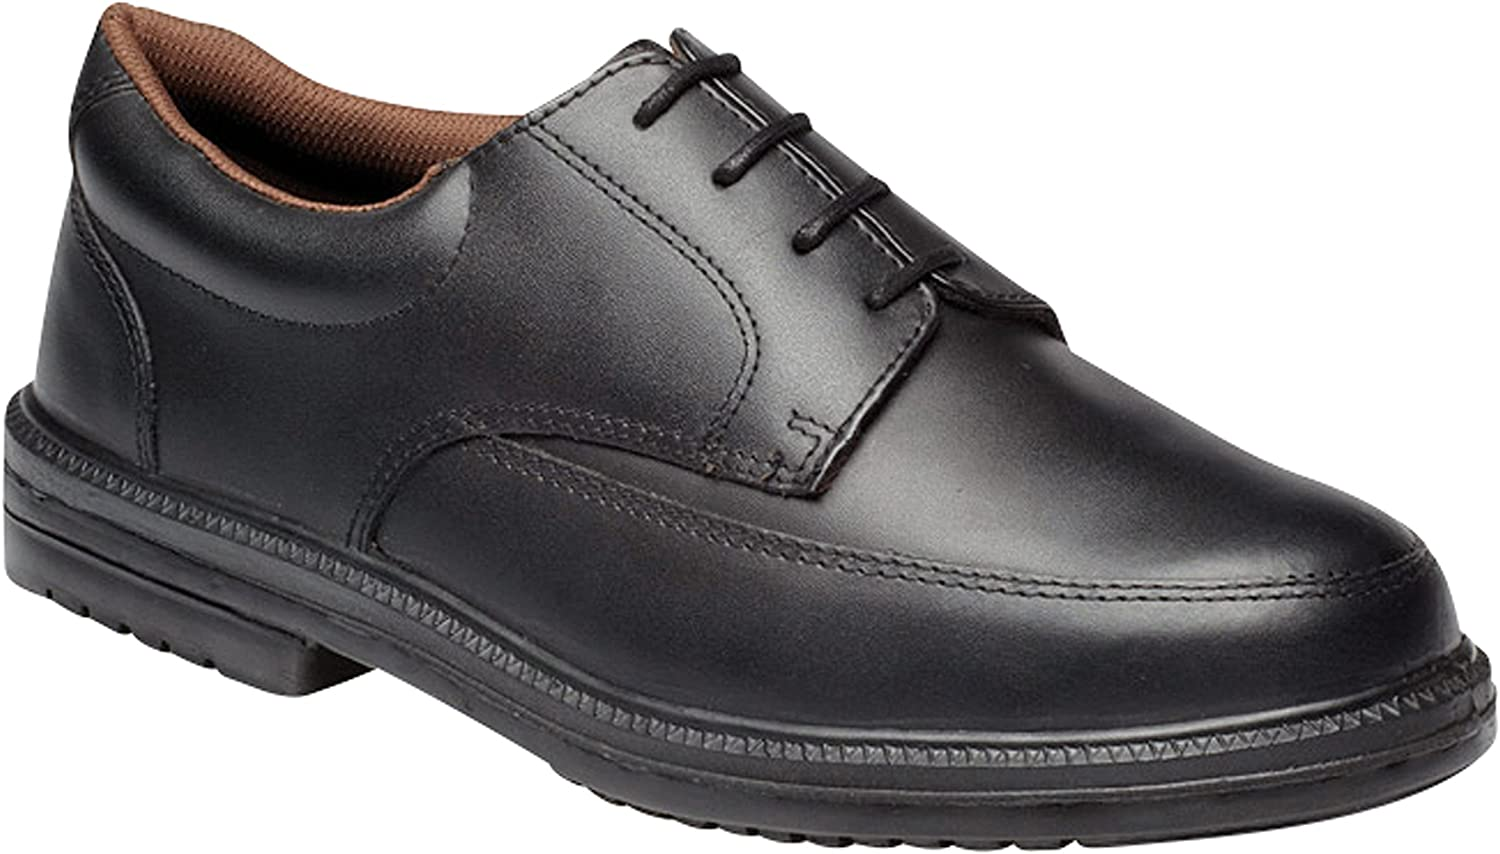 Dickies Executive Super Safety shoes